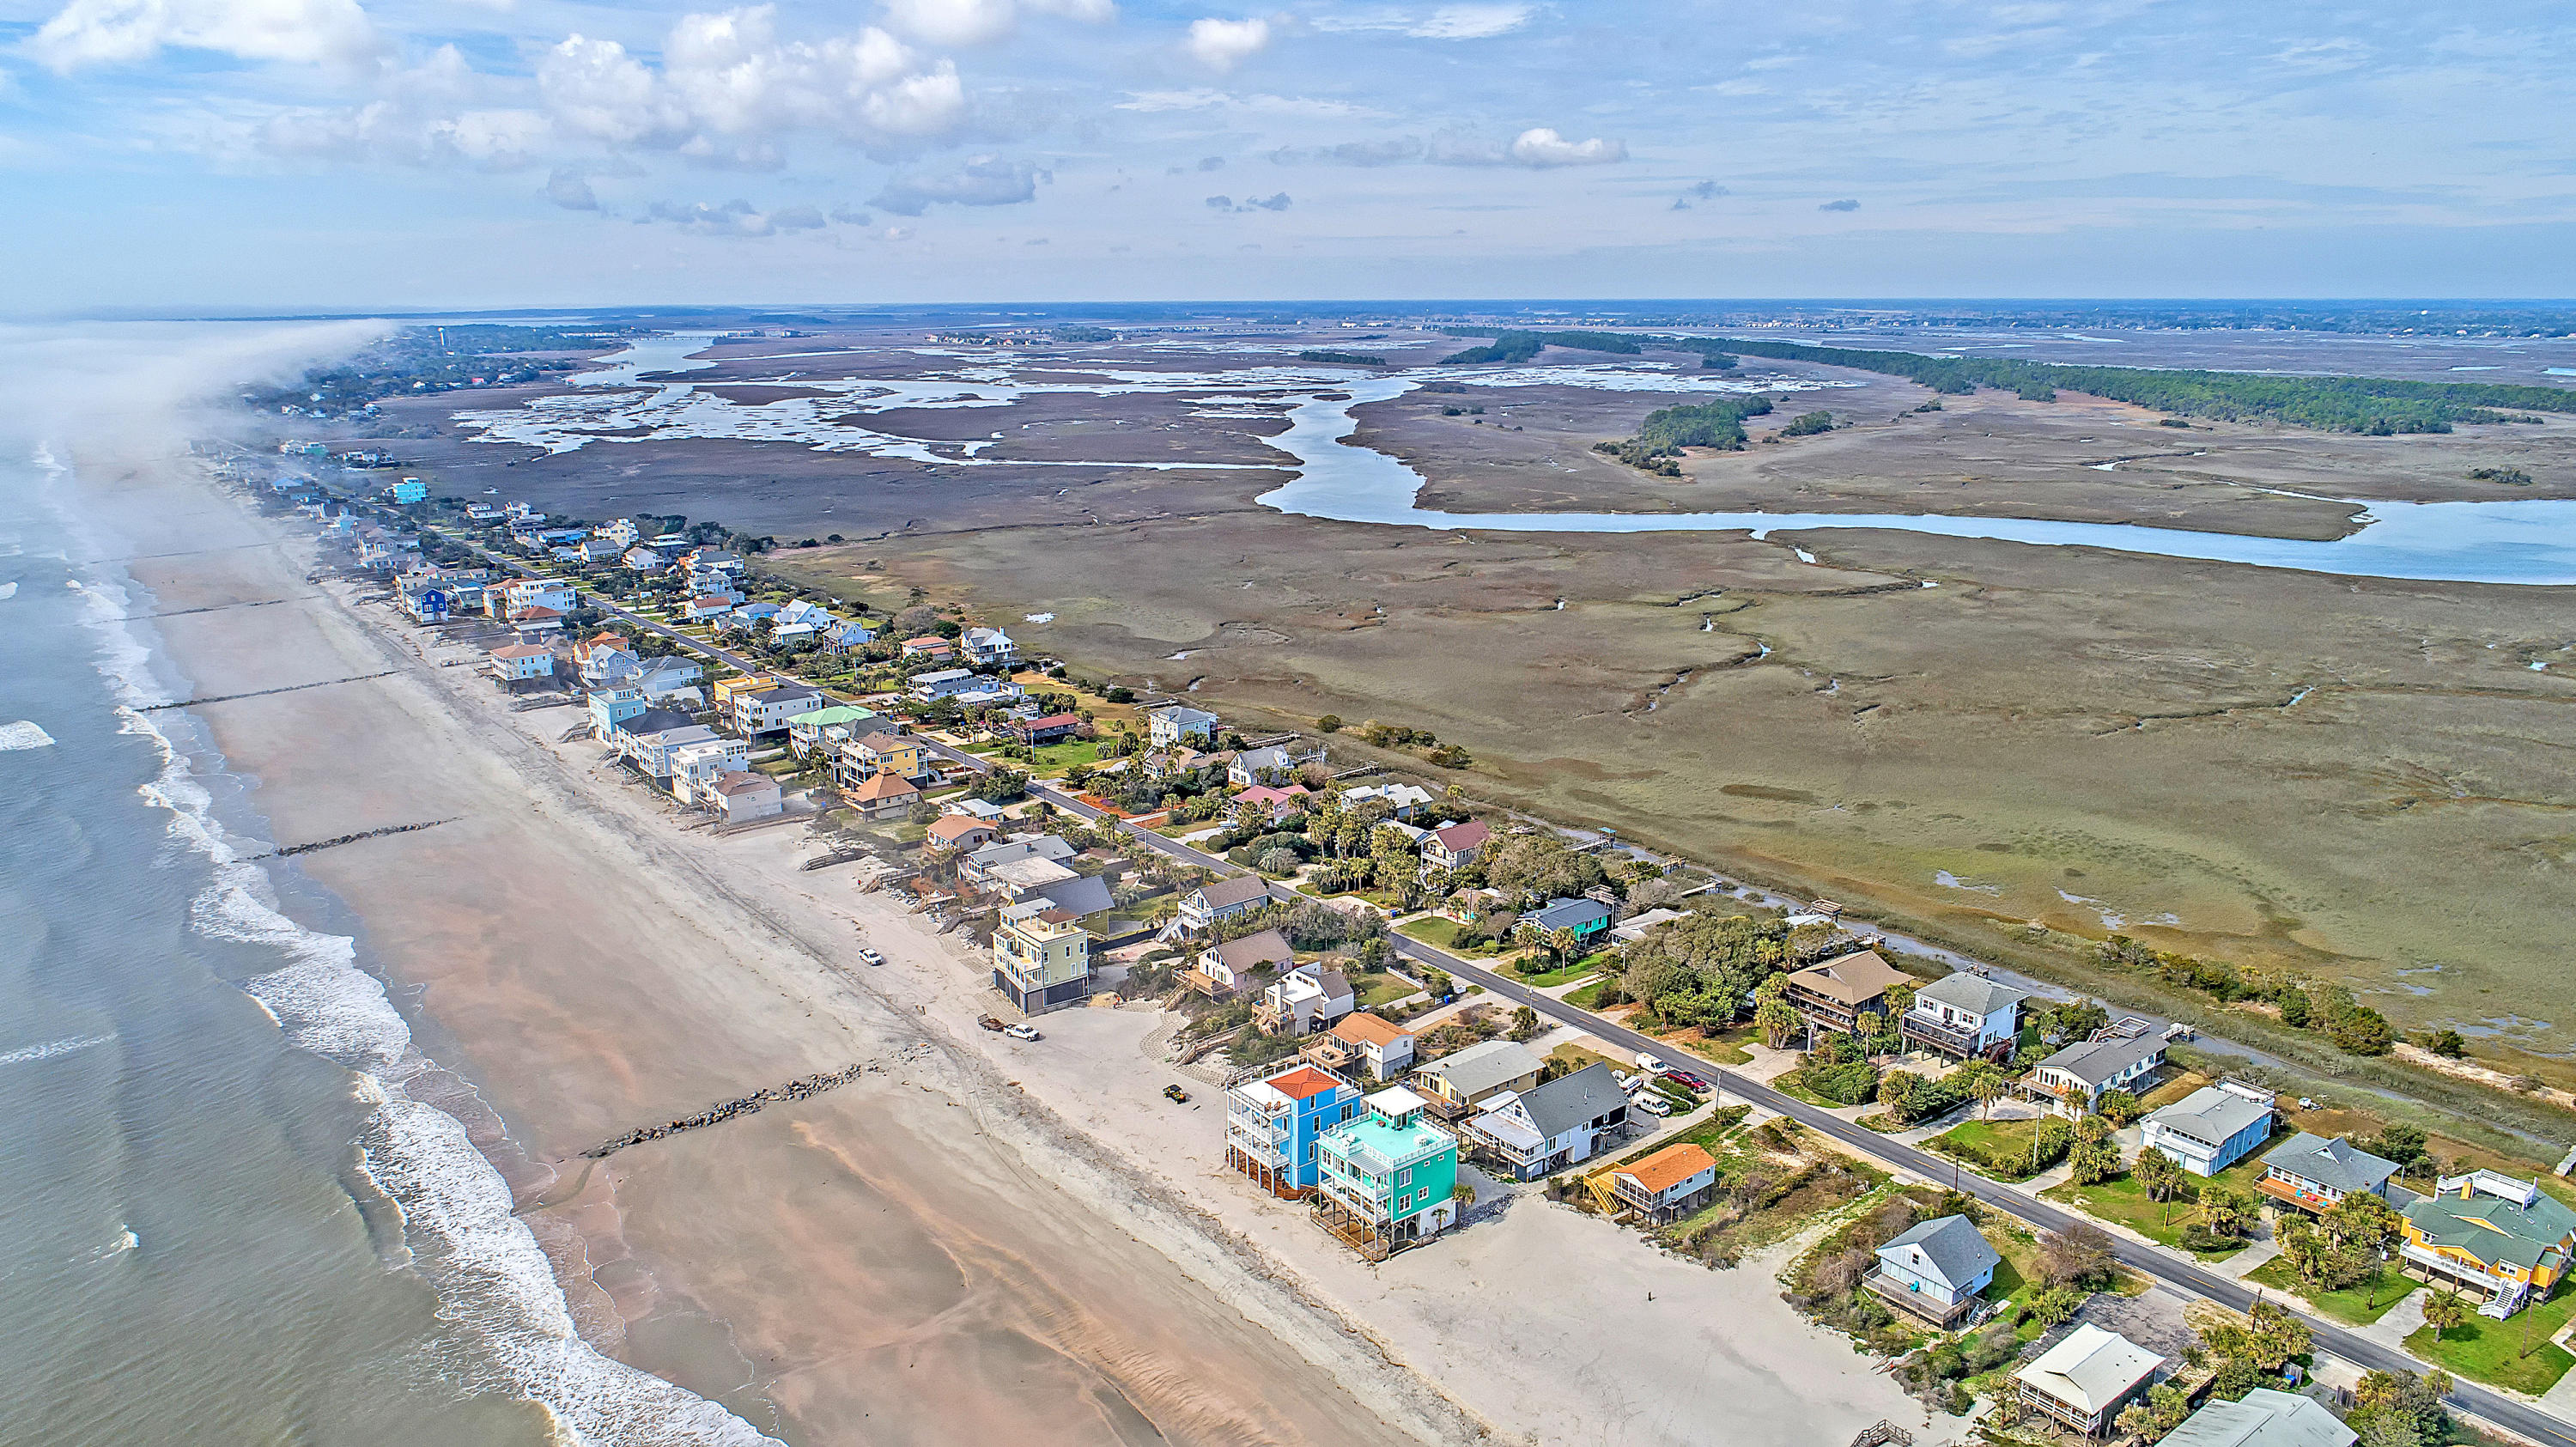 E Folly Bch Shores Homes For Sale - 1707 Ashley, Folly Beach, SC - 24